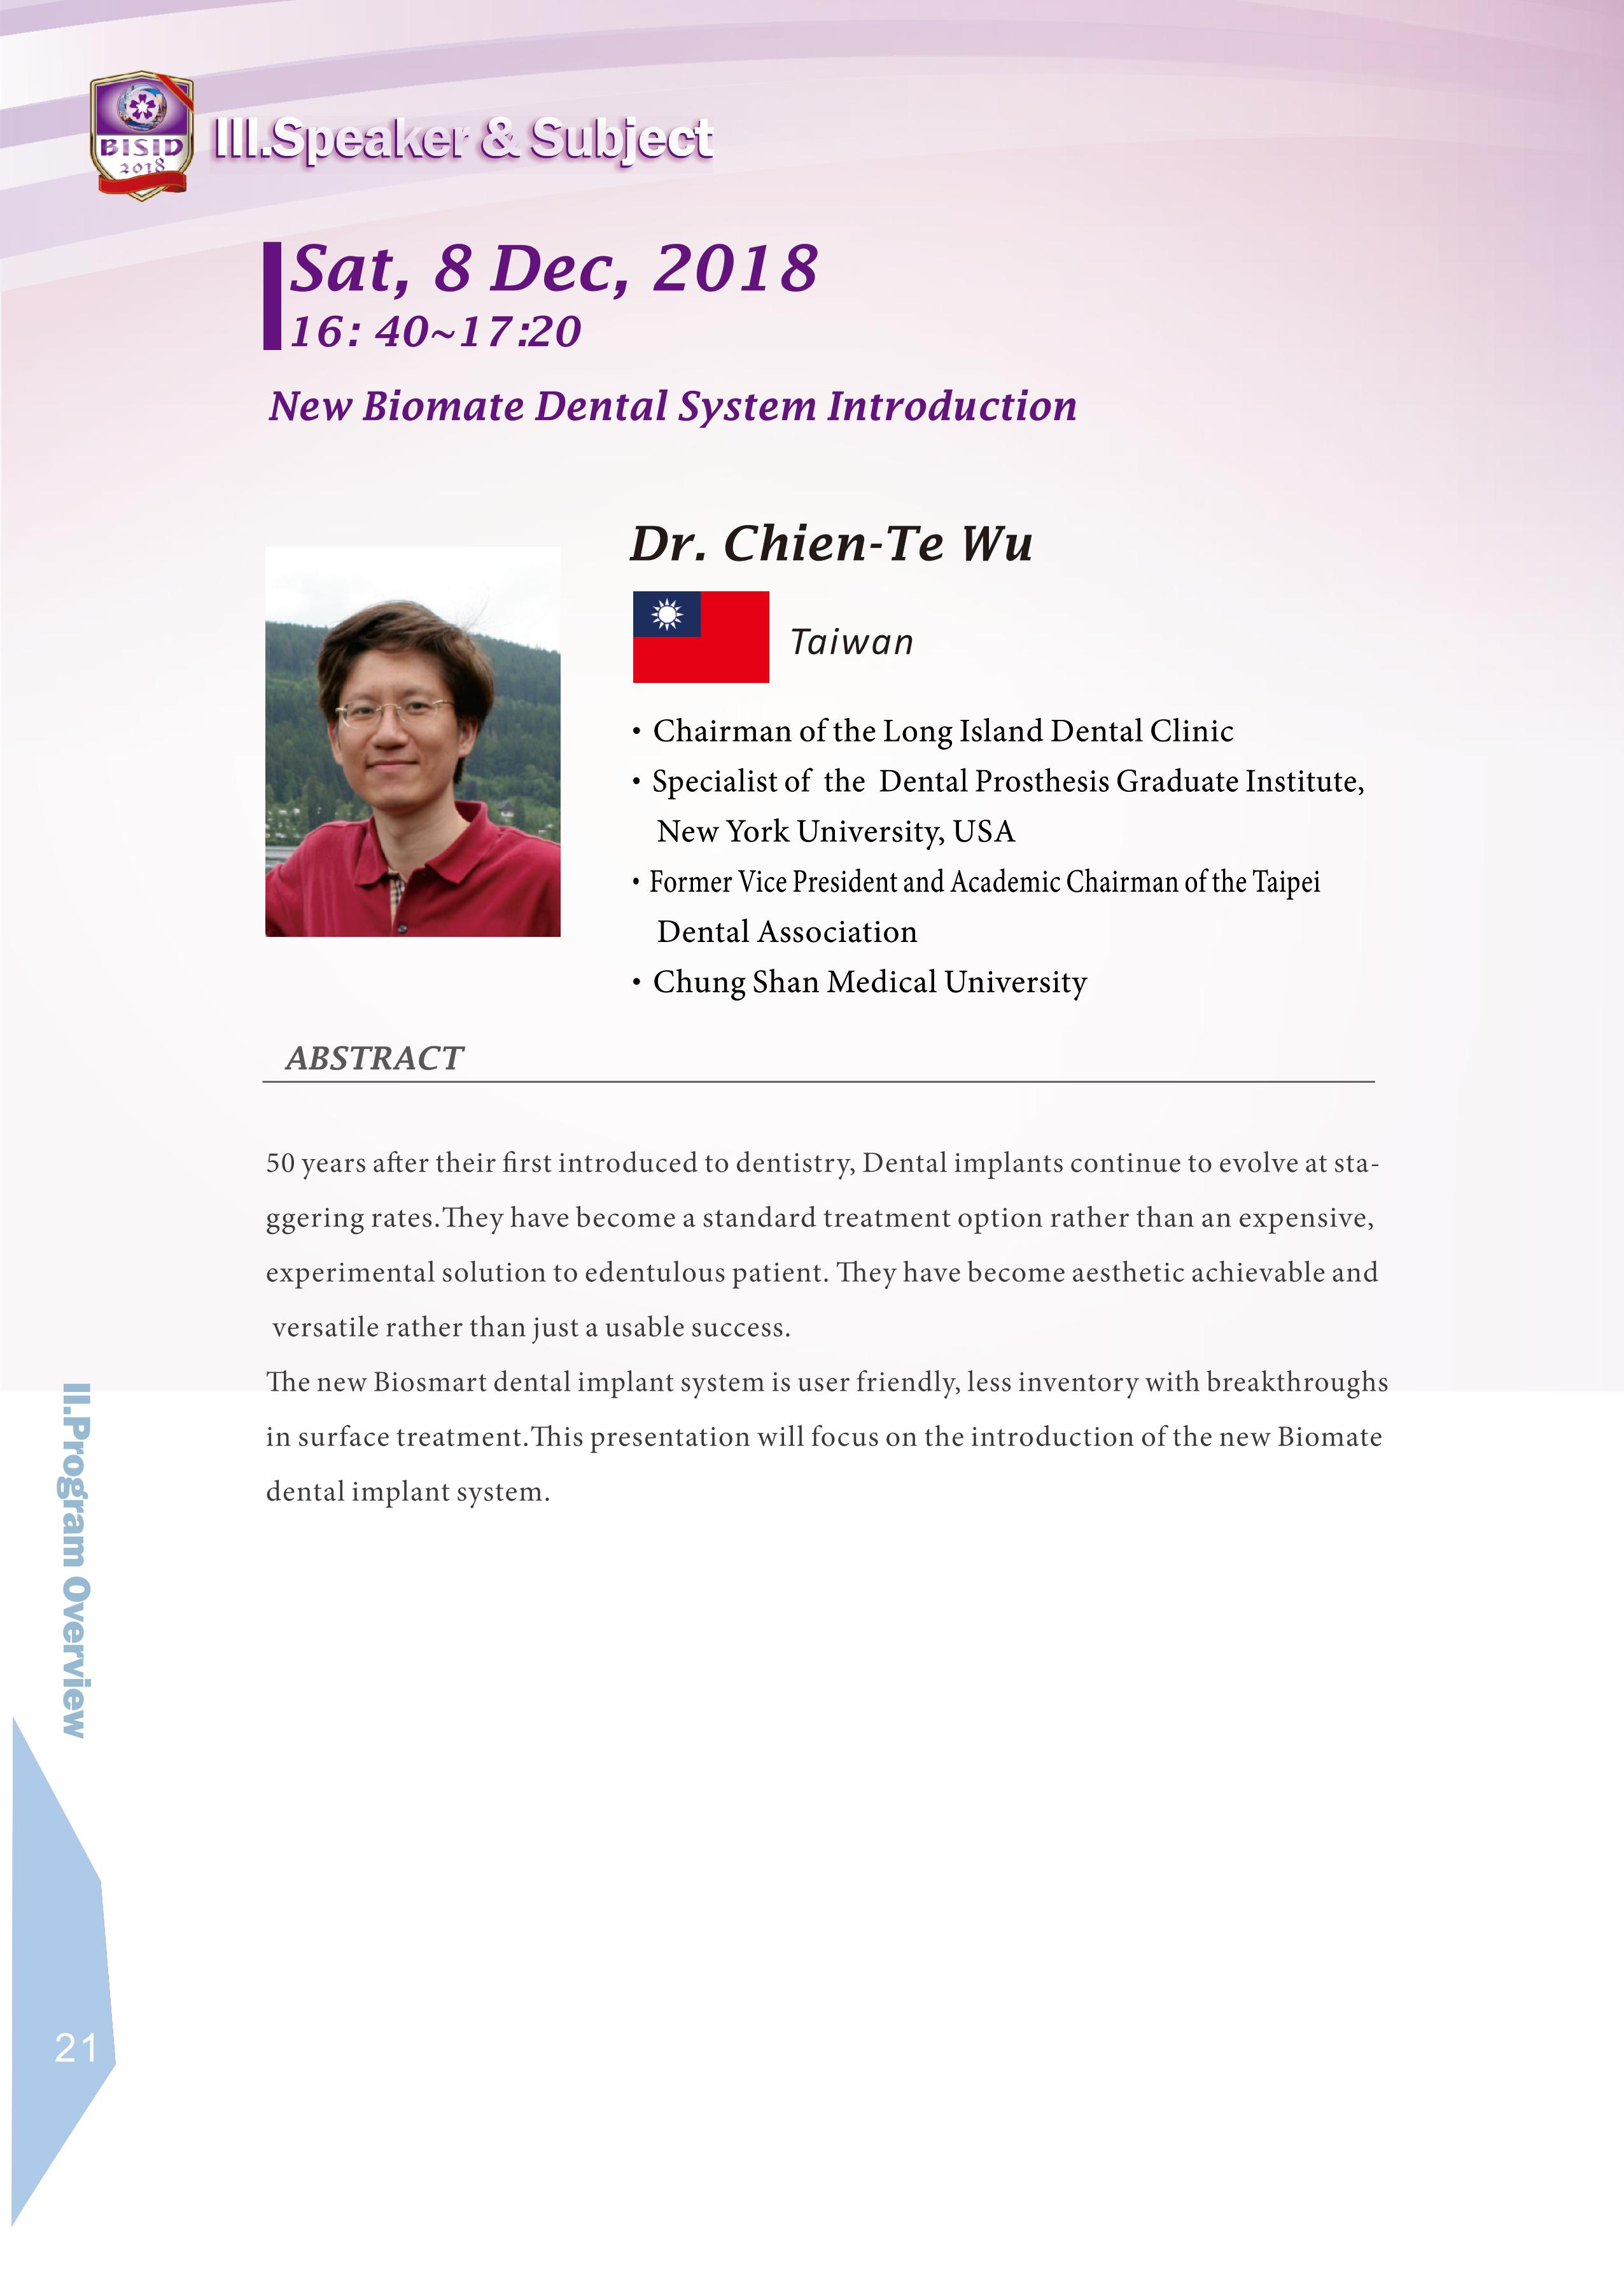 Biomate Internation Symposium of Implant Dentistry-Dr.Chien-Te Wu